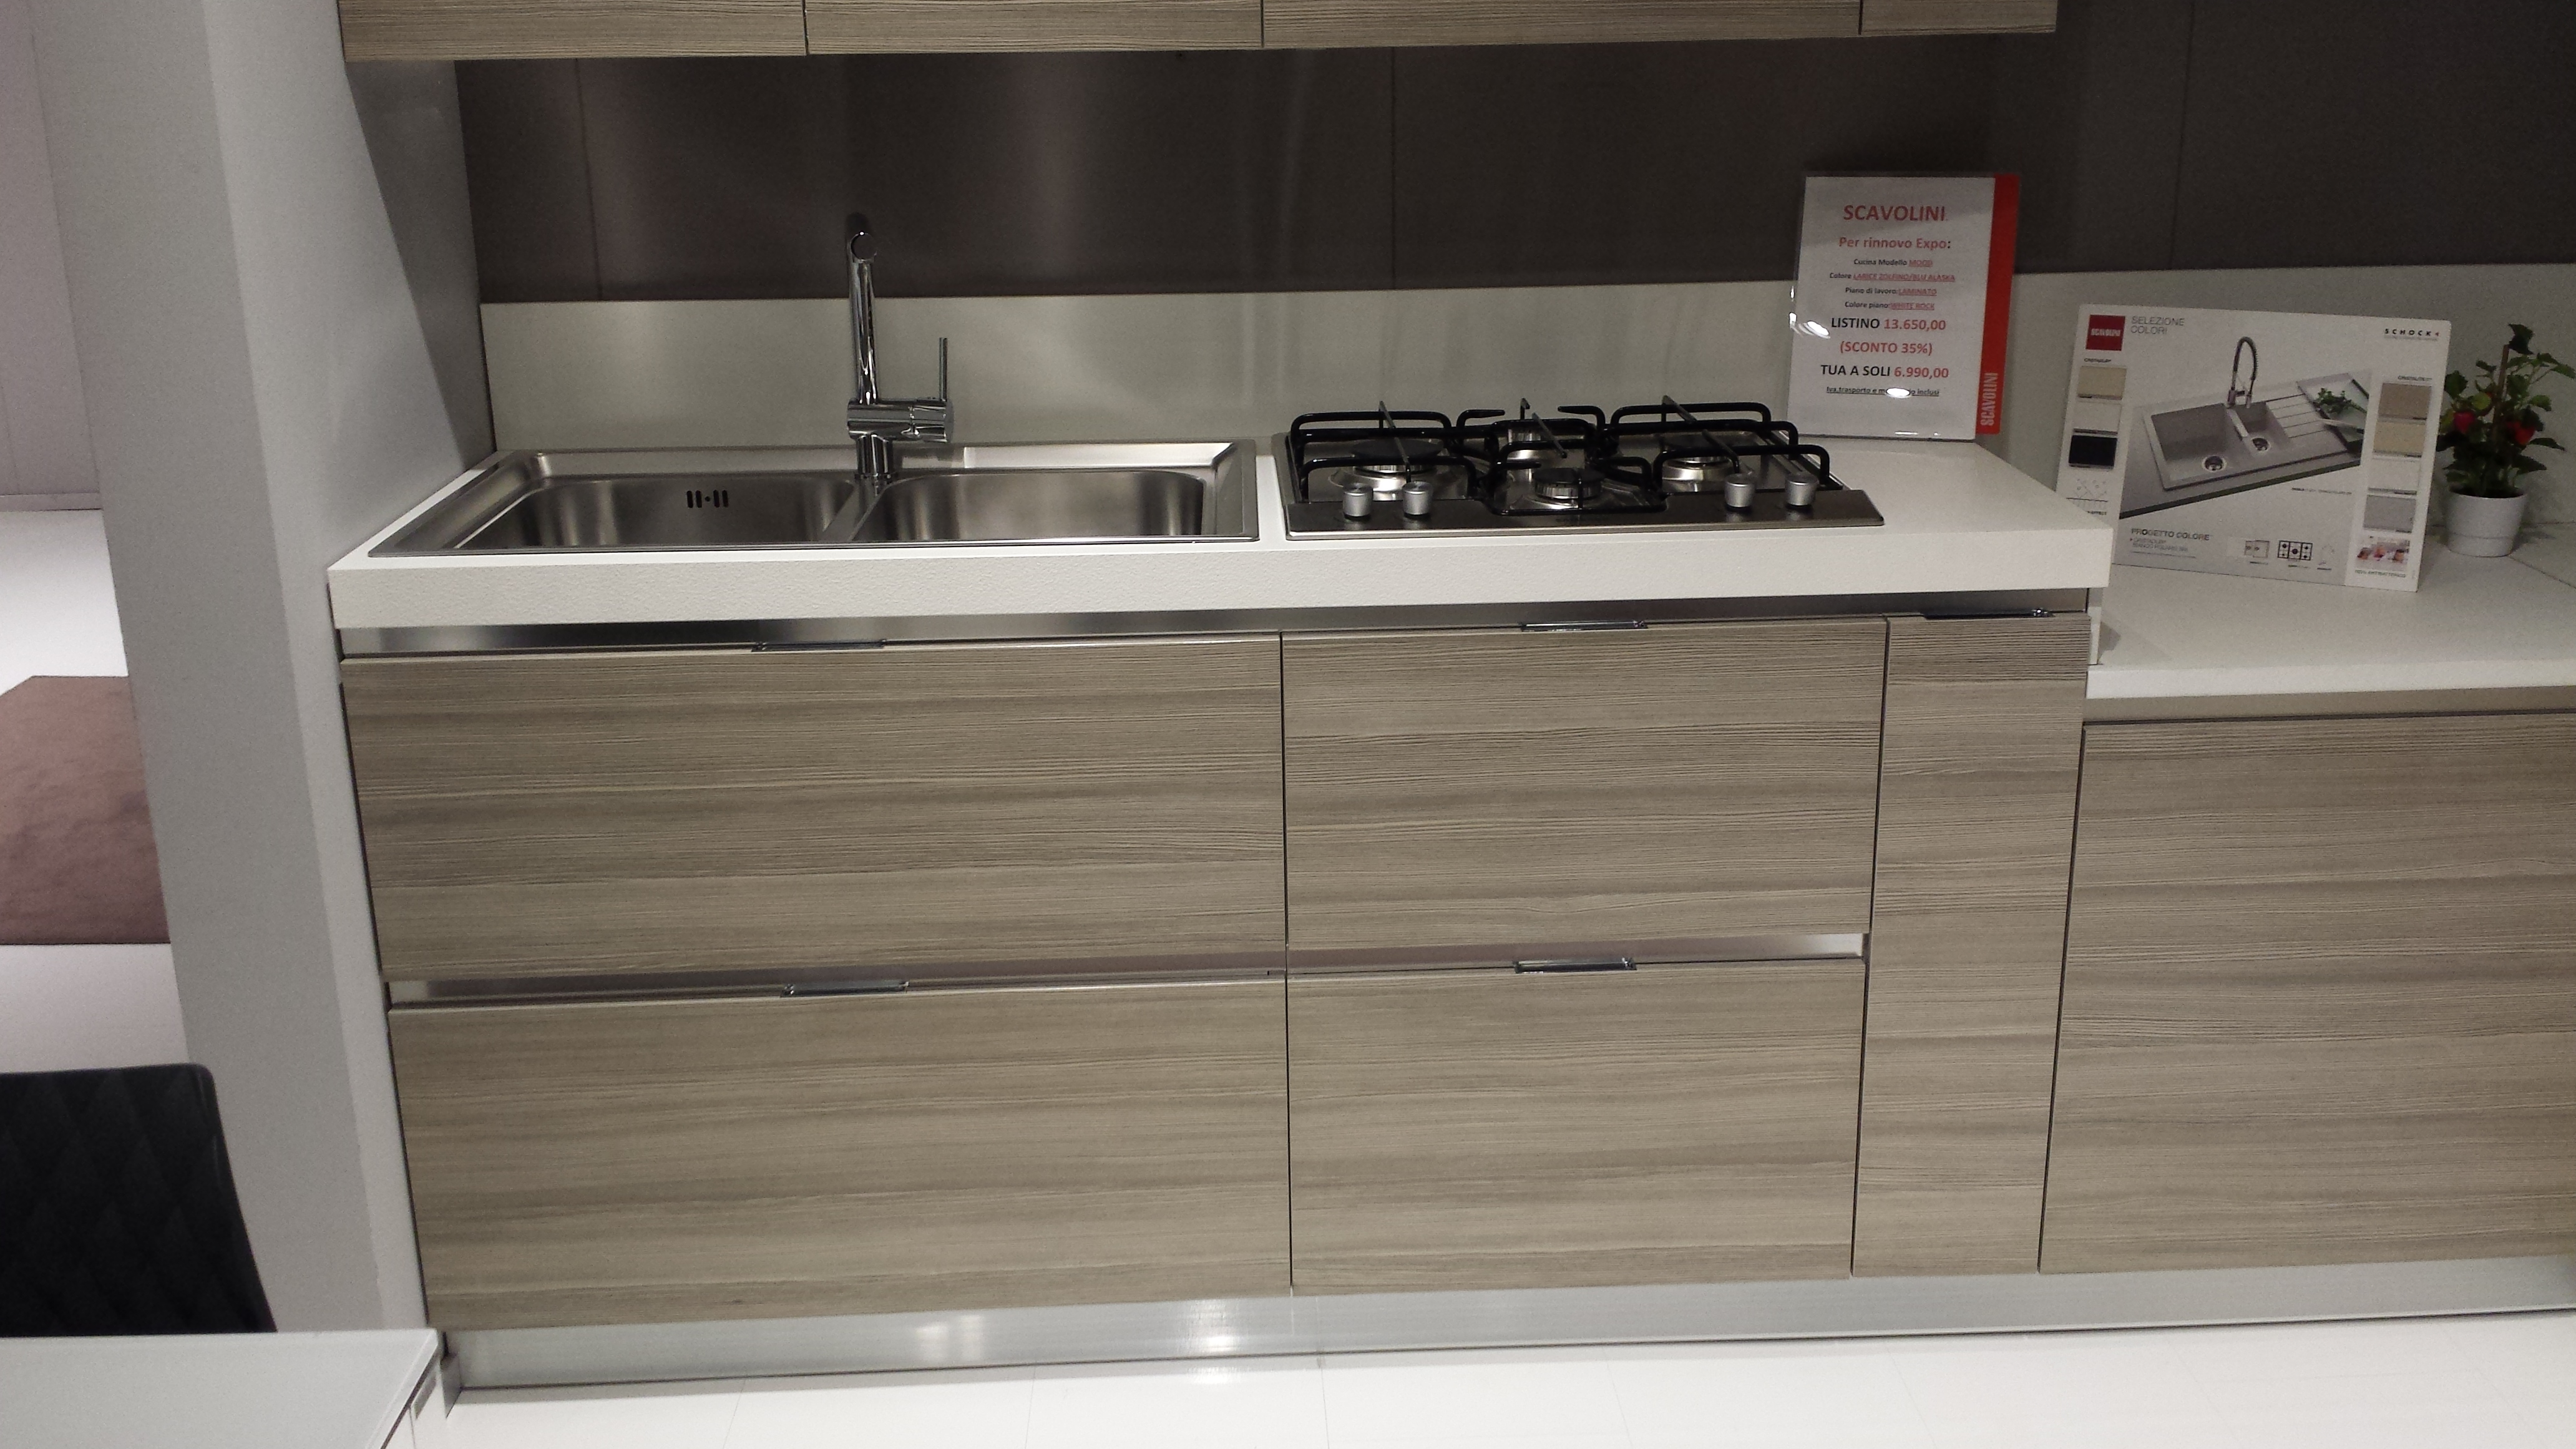 Stunning Outlet Cucine Scavolini Contemporary - Acomo.us - acomo.us